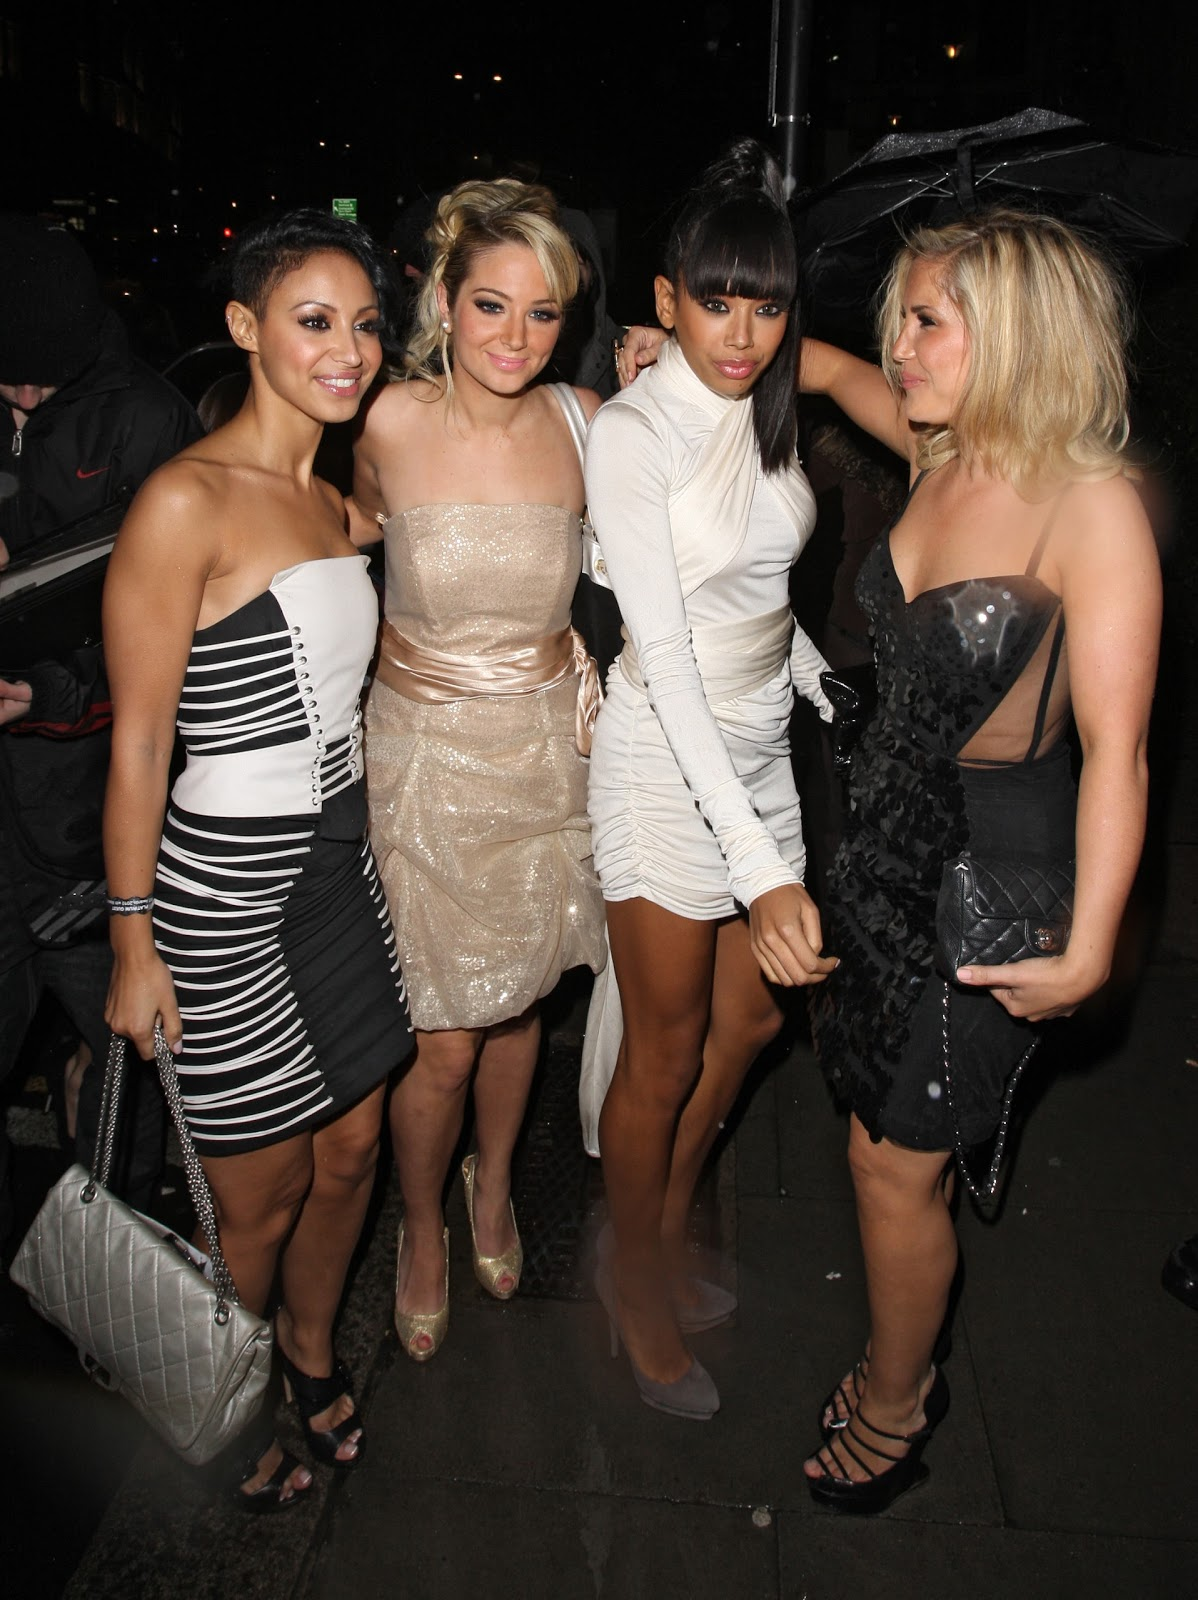 http://3.bp.blogspot.com/_NyZri5bmul4/TSzB8qtsqwI/AAAAAAAAFOg/7fUjxxQ5c6M/s1600/22931_Sugababes_-_Brits_Universal_After-Party__16th_Feb_2010_122_185lo.jpg